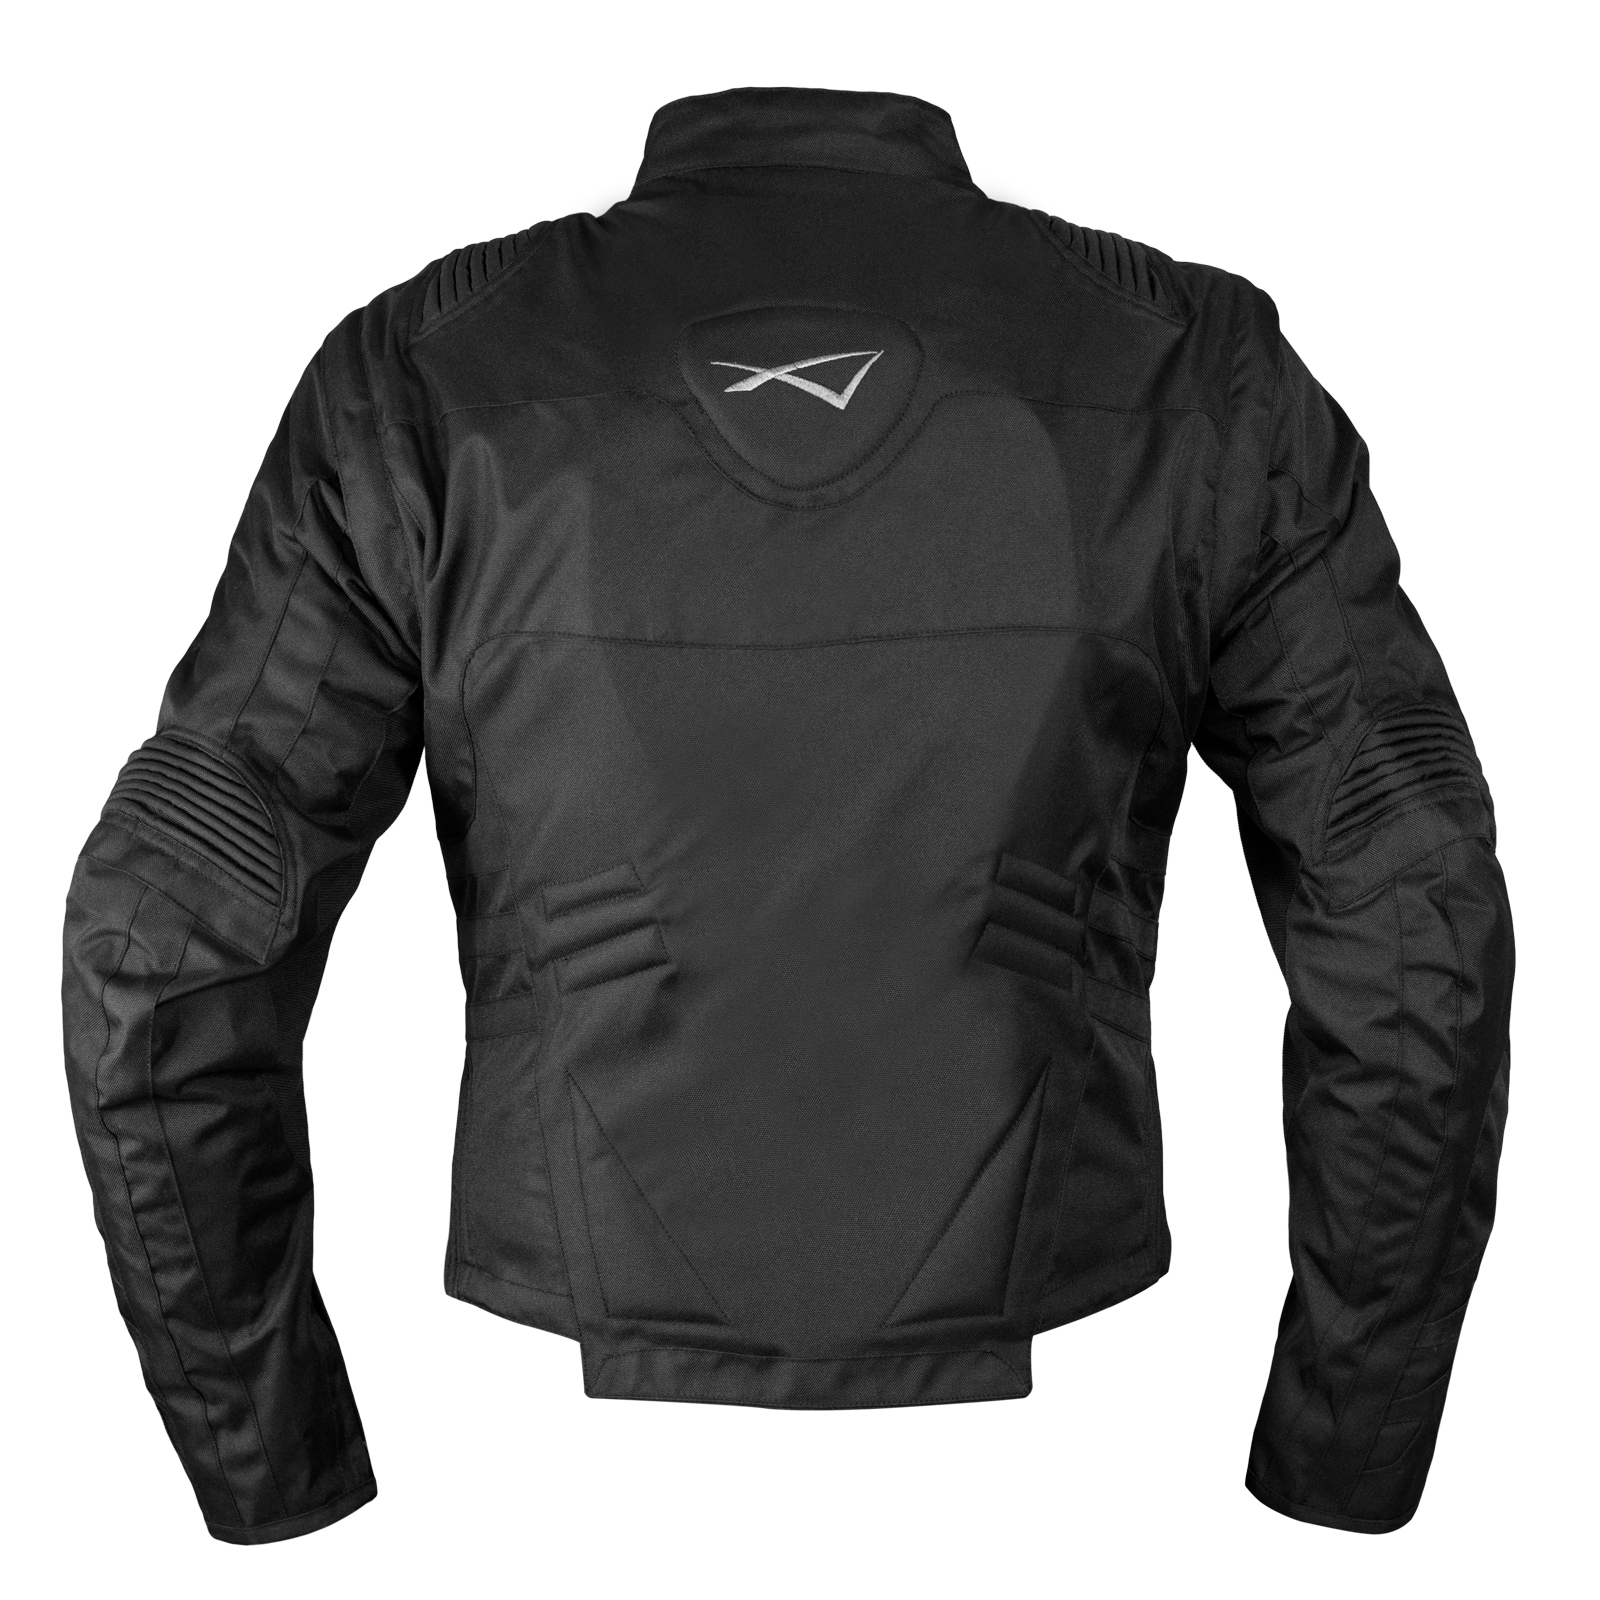 Giacca-Moto-Tessuto-Cordura-Manica-Staccabile-Racing-Sport-Touring-Scooter